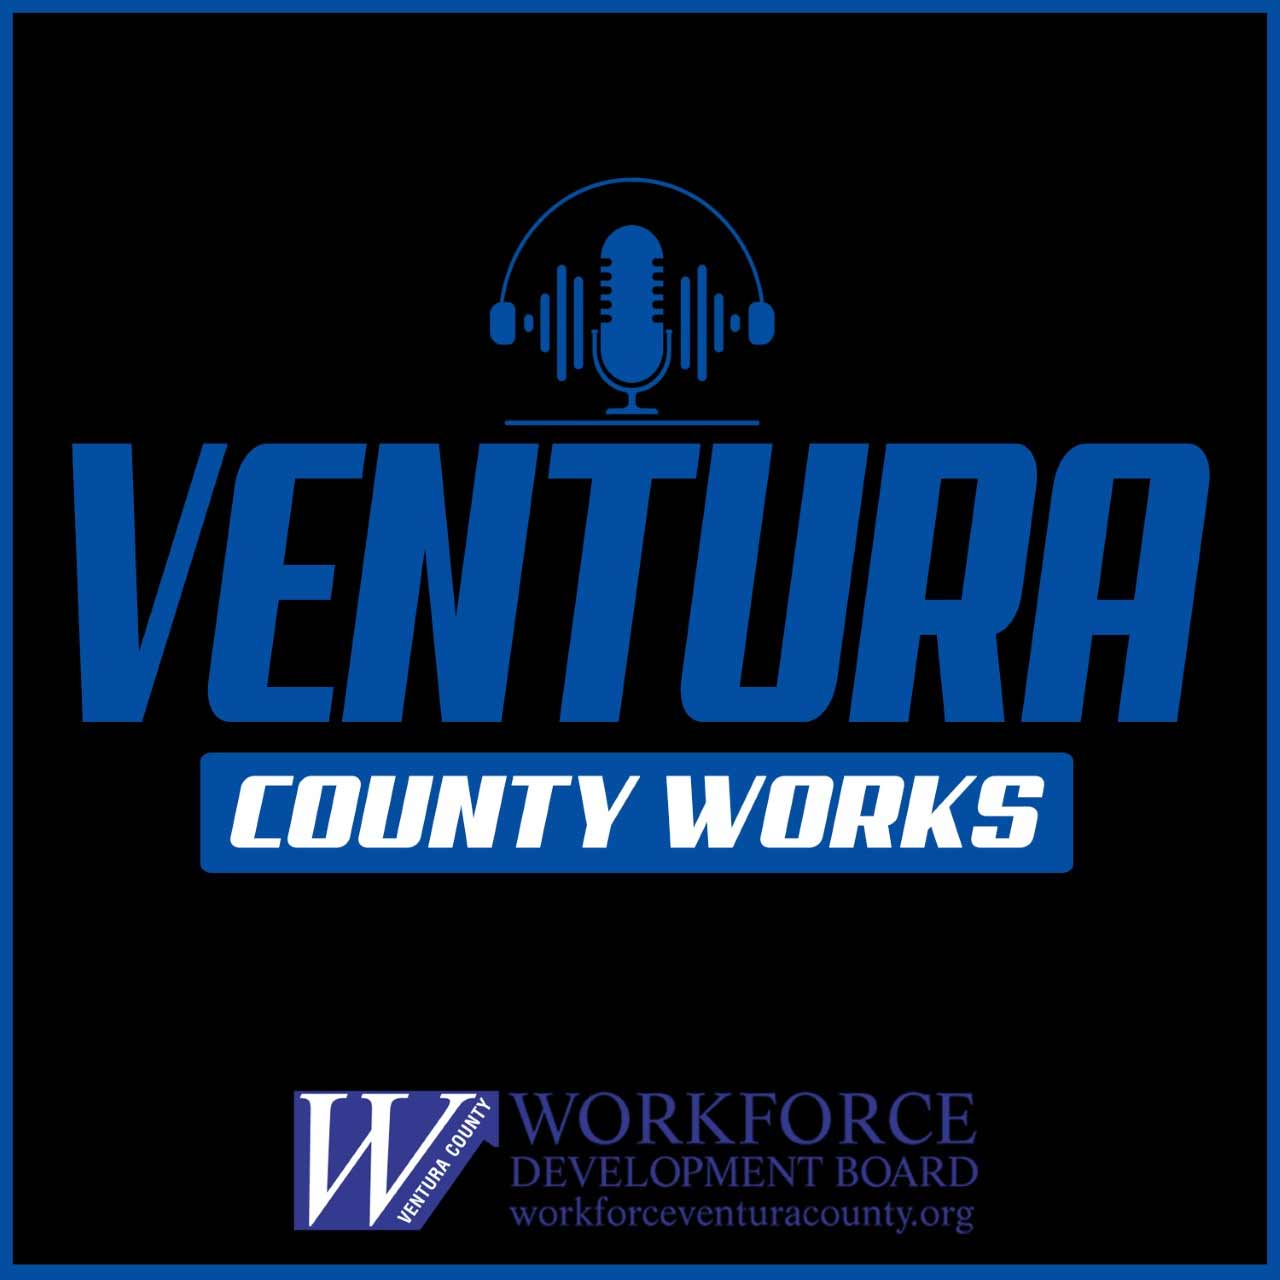 Ventura County Works